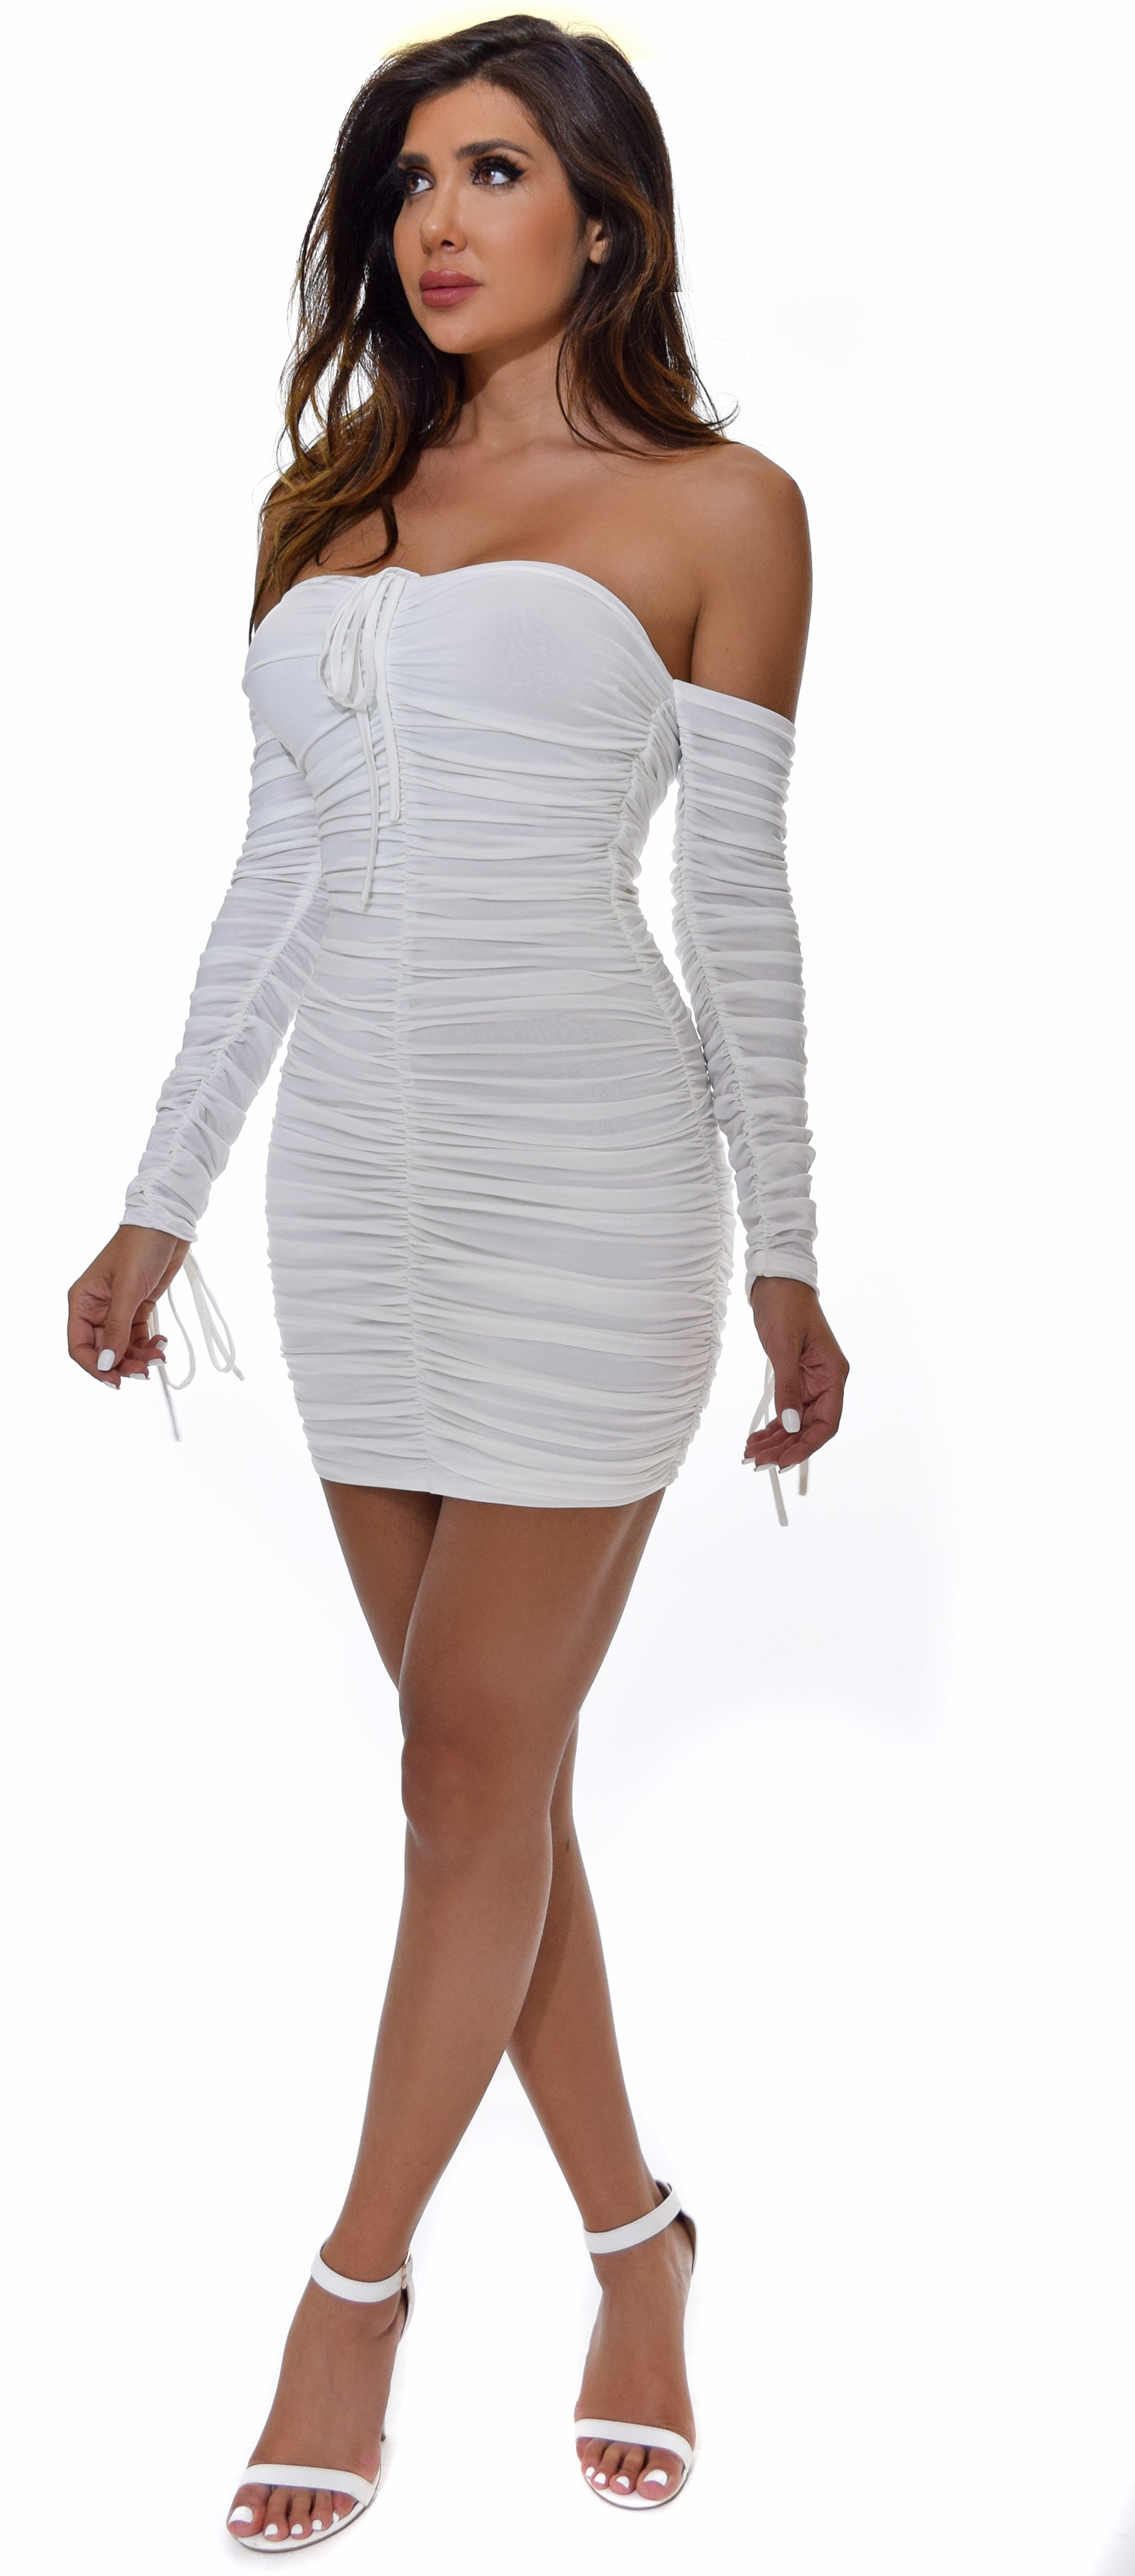 Maleya White Ruched Dress